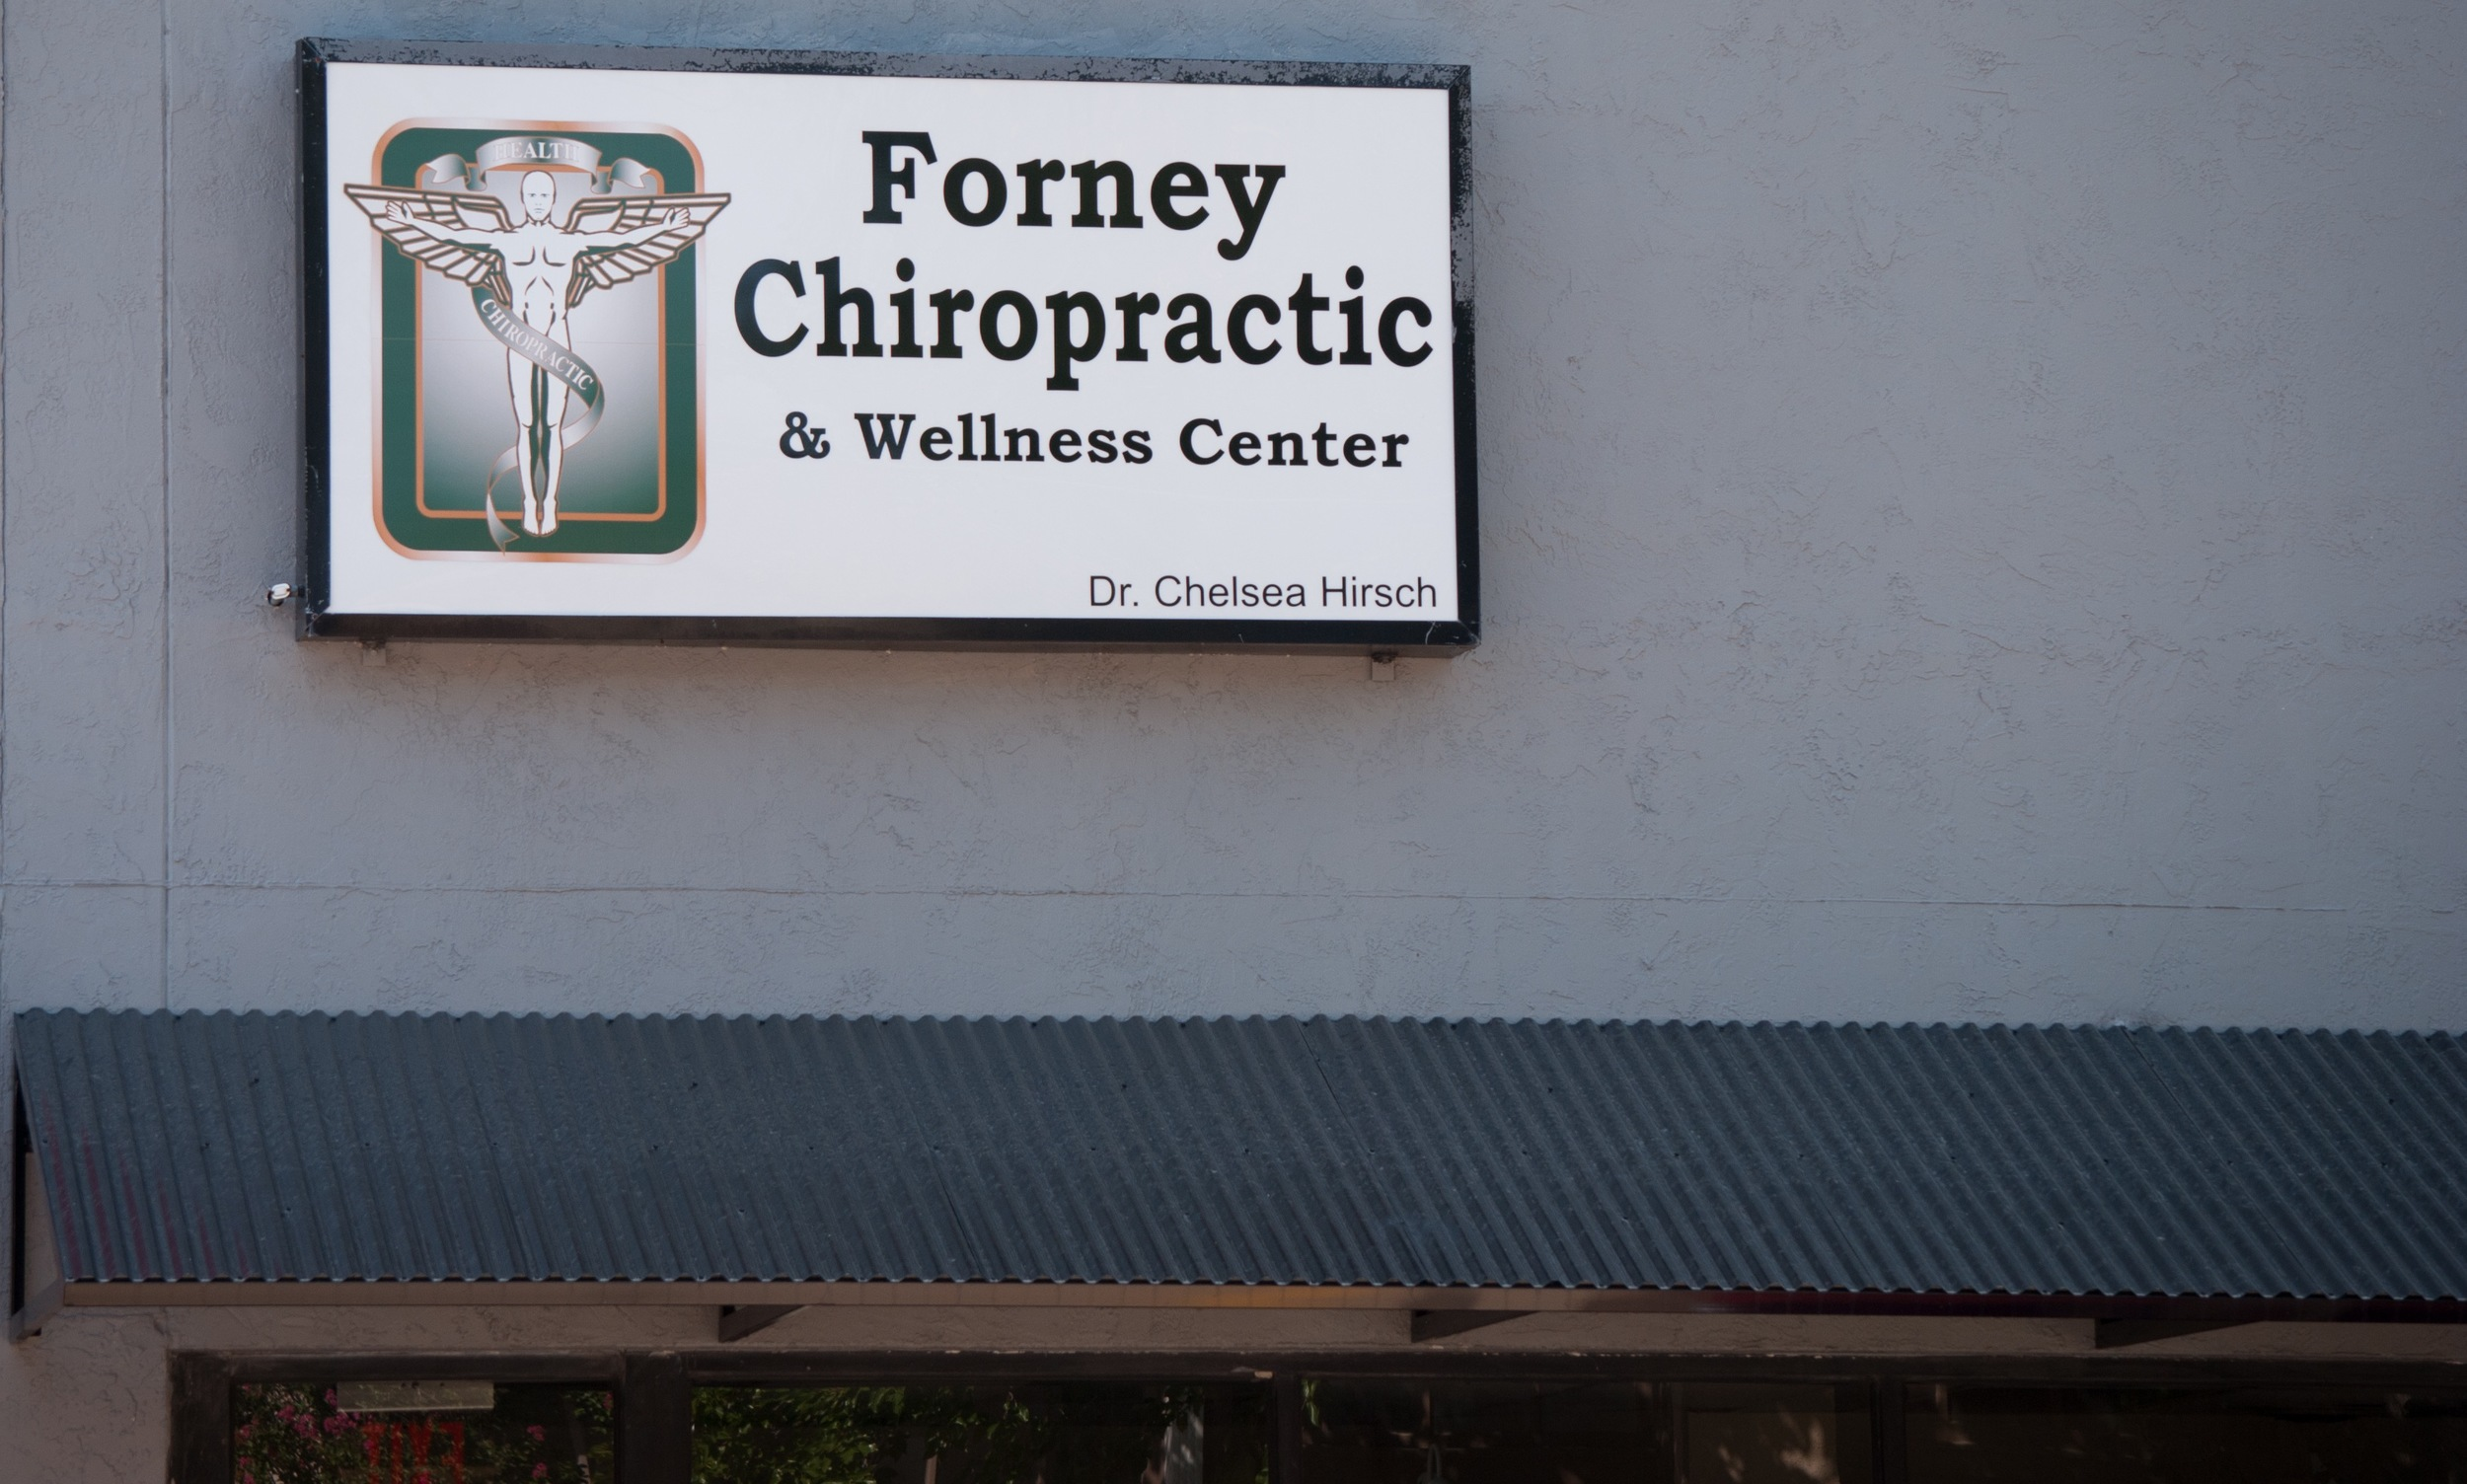 Forney Chiropractic